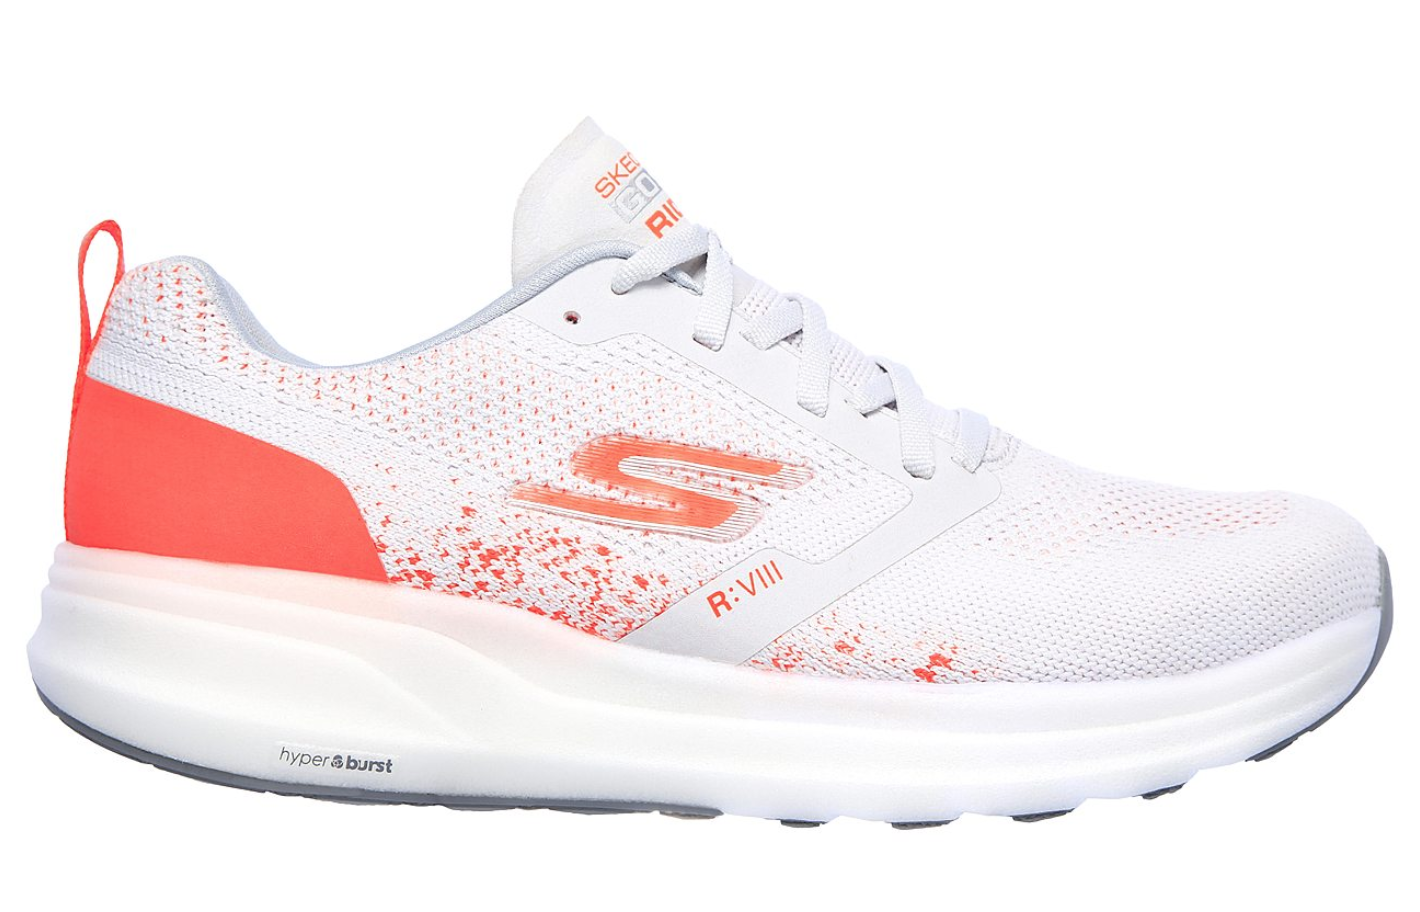 skechers shoes where to buy